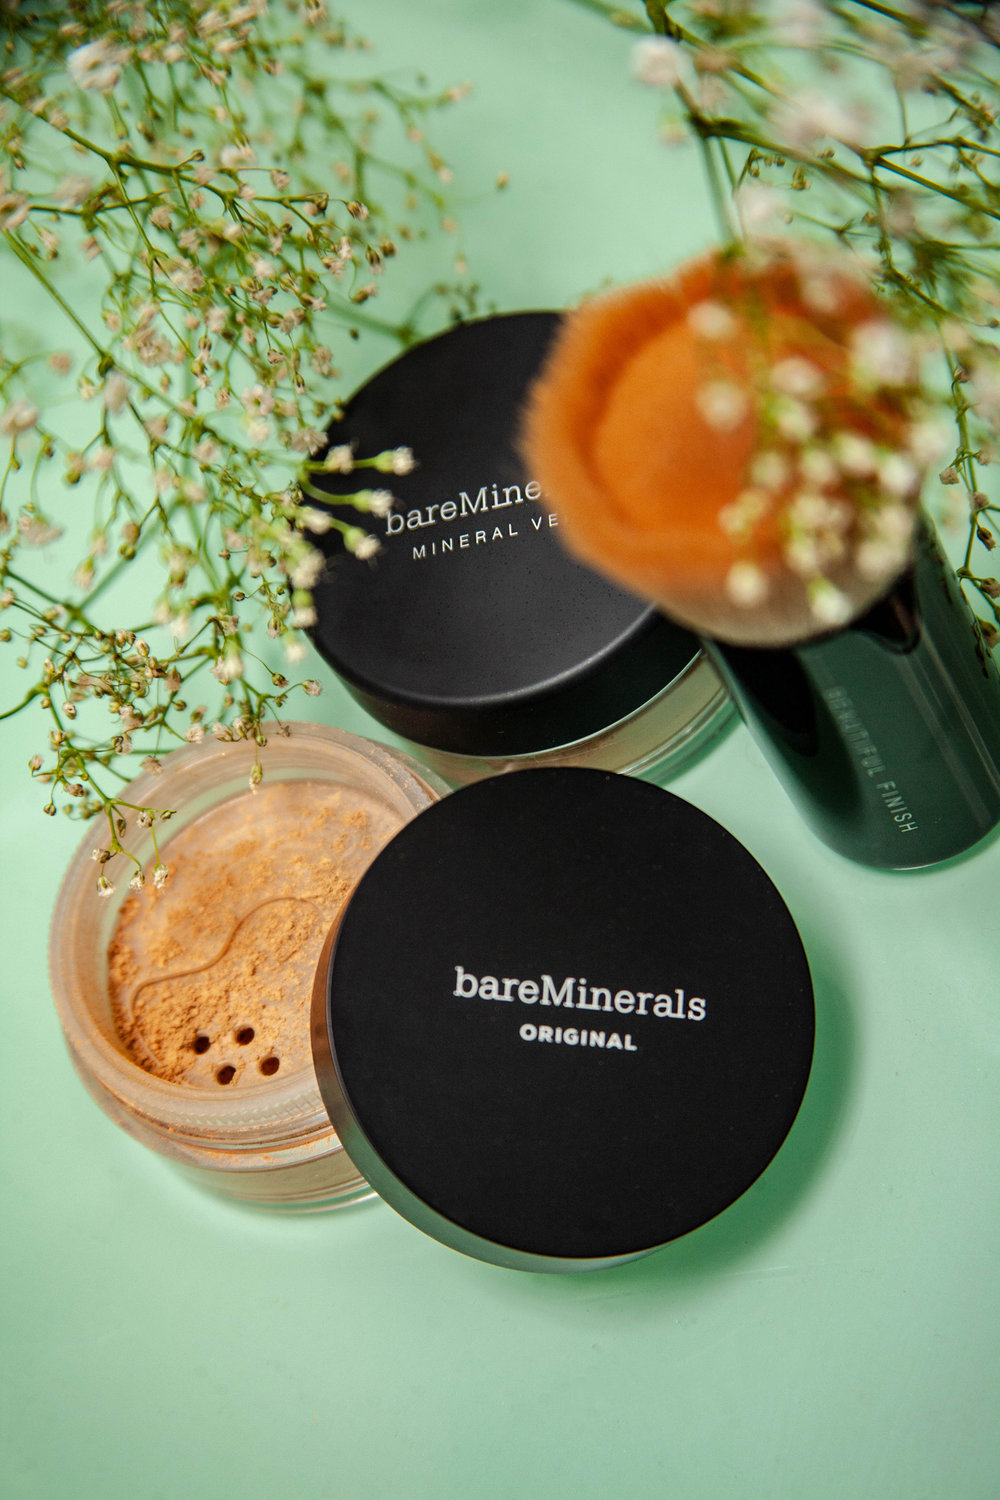 bareMinerals Original makeup